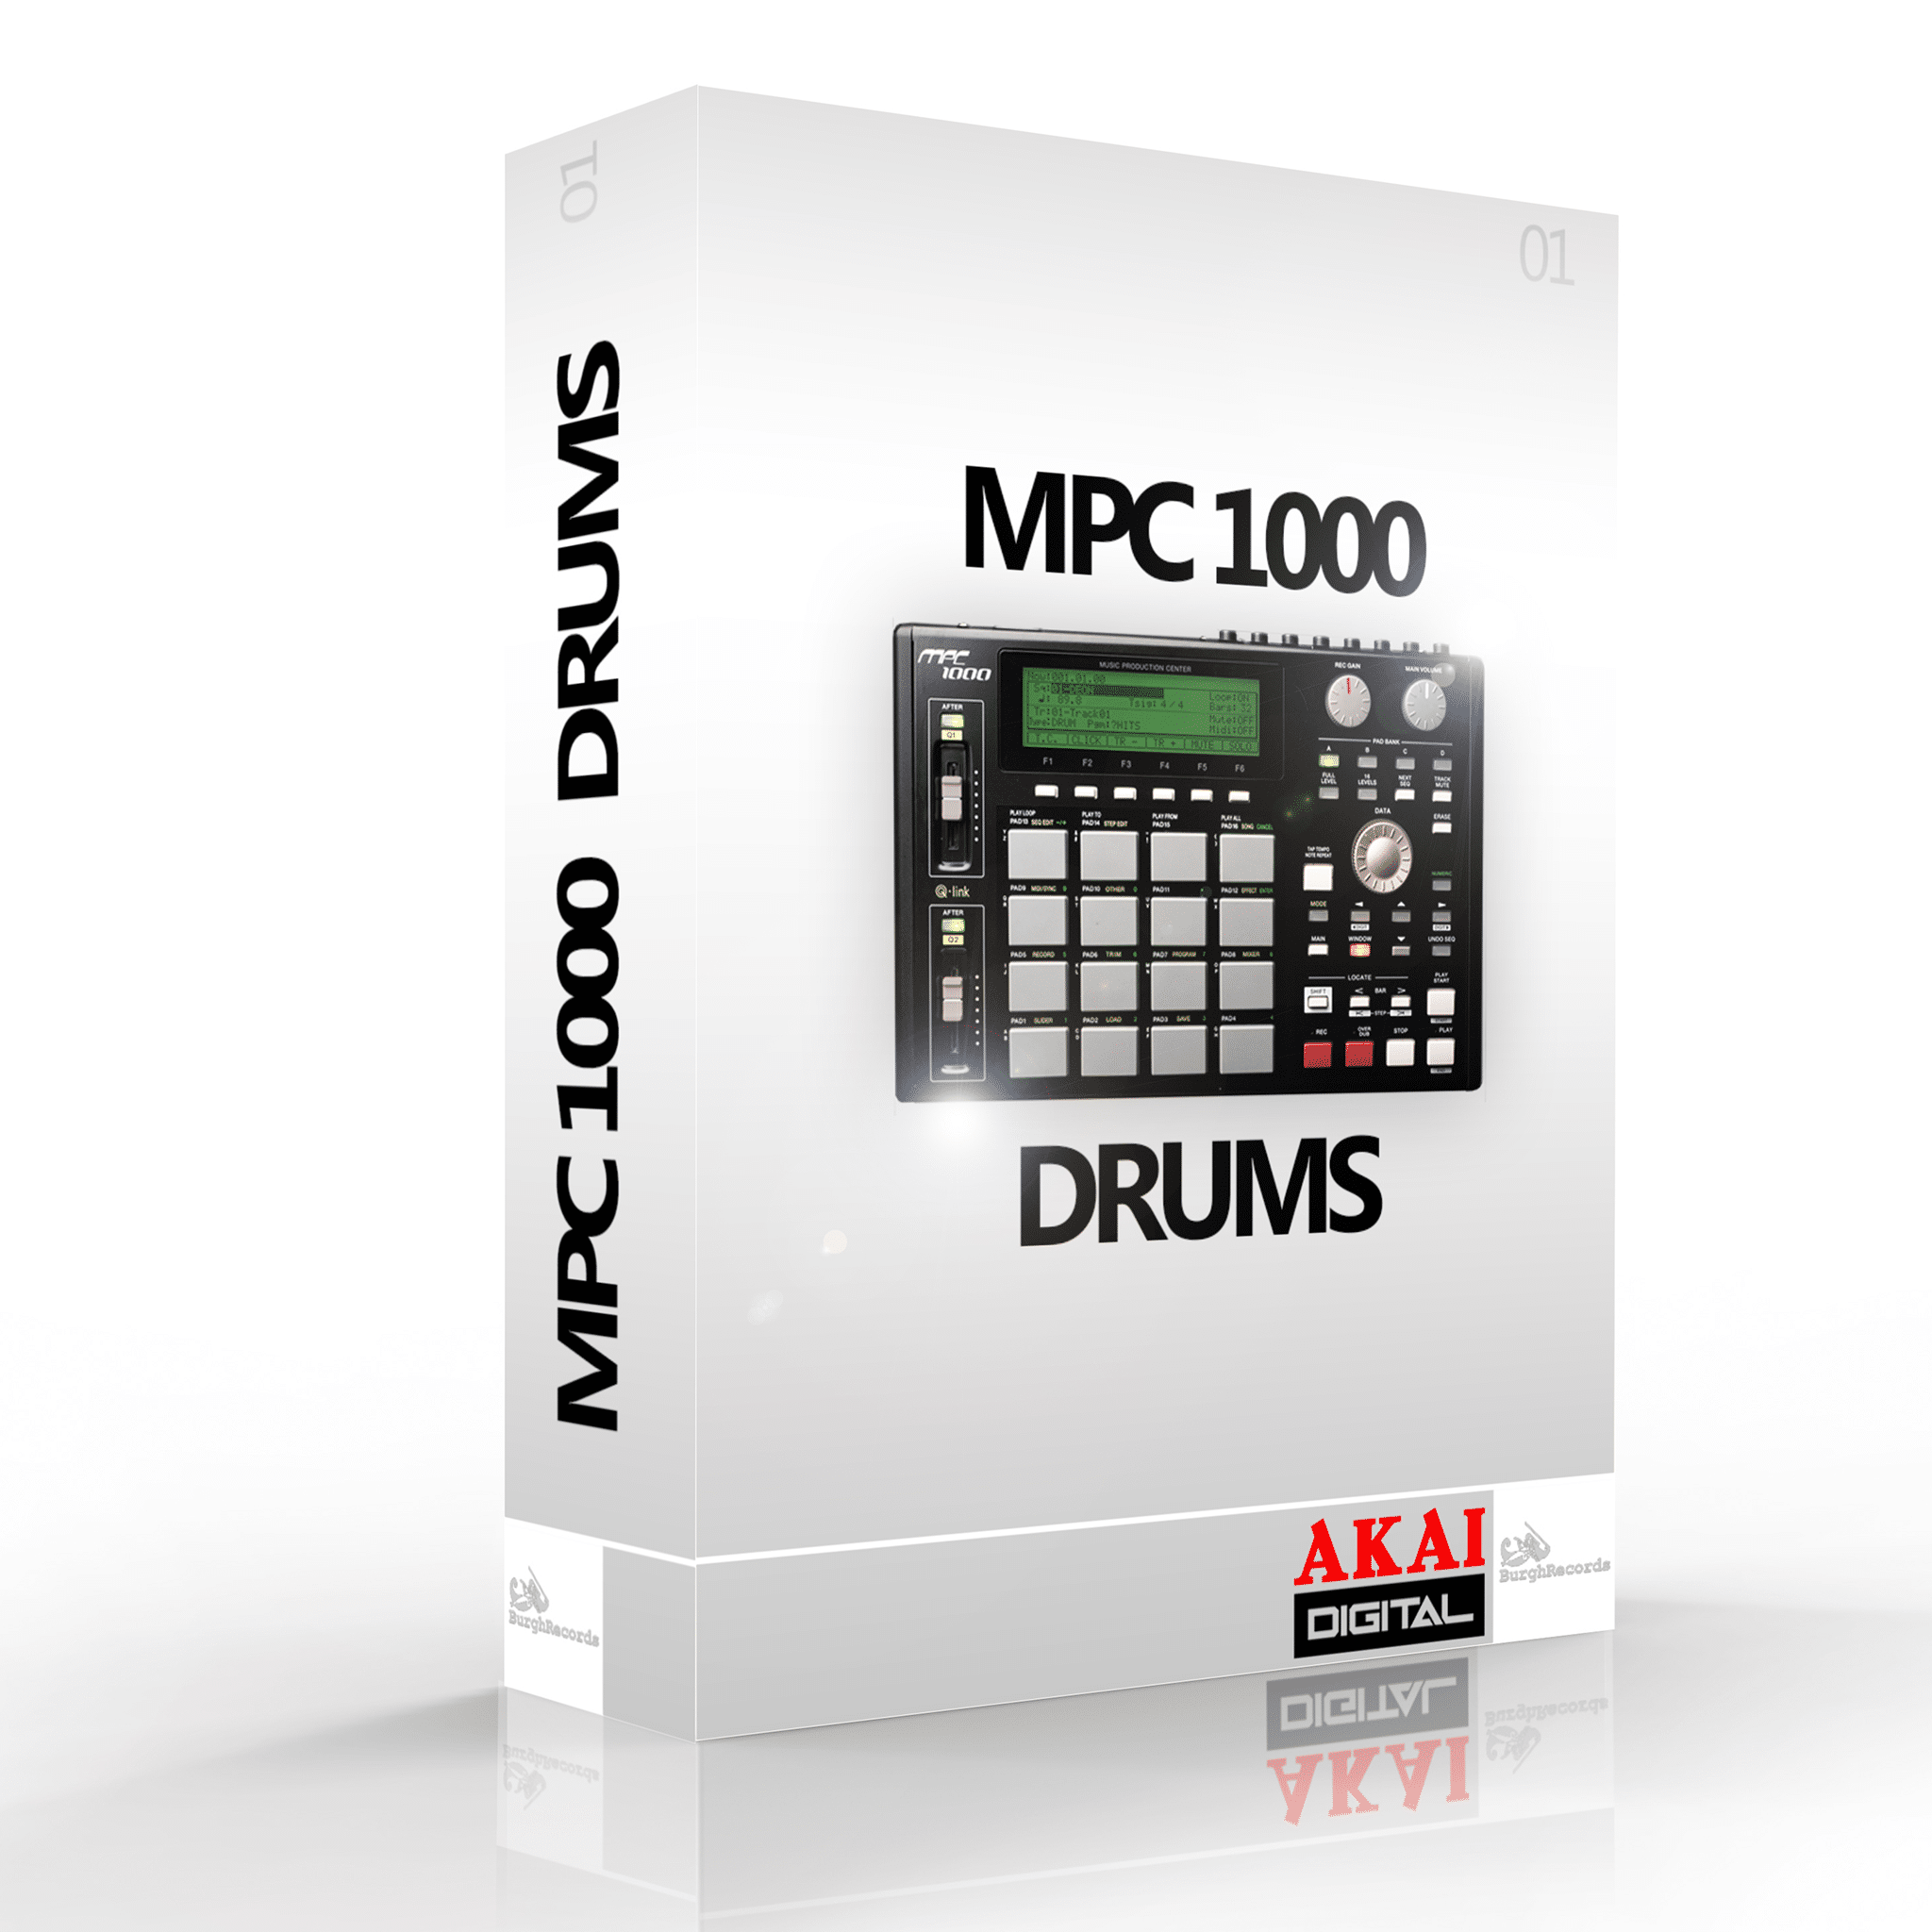 MPC 1000 DRUMS